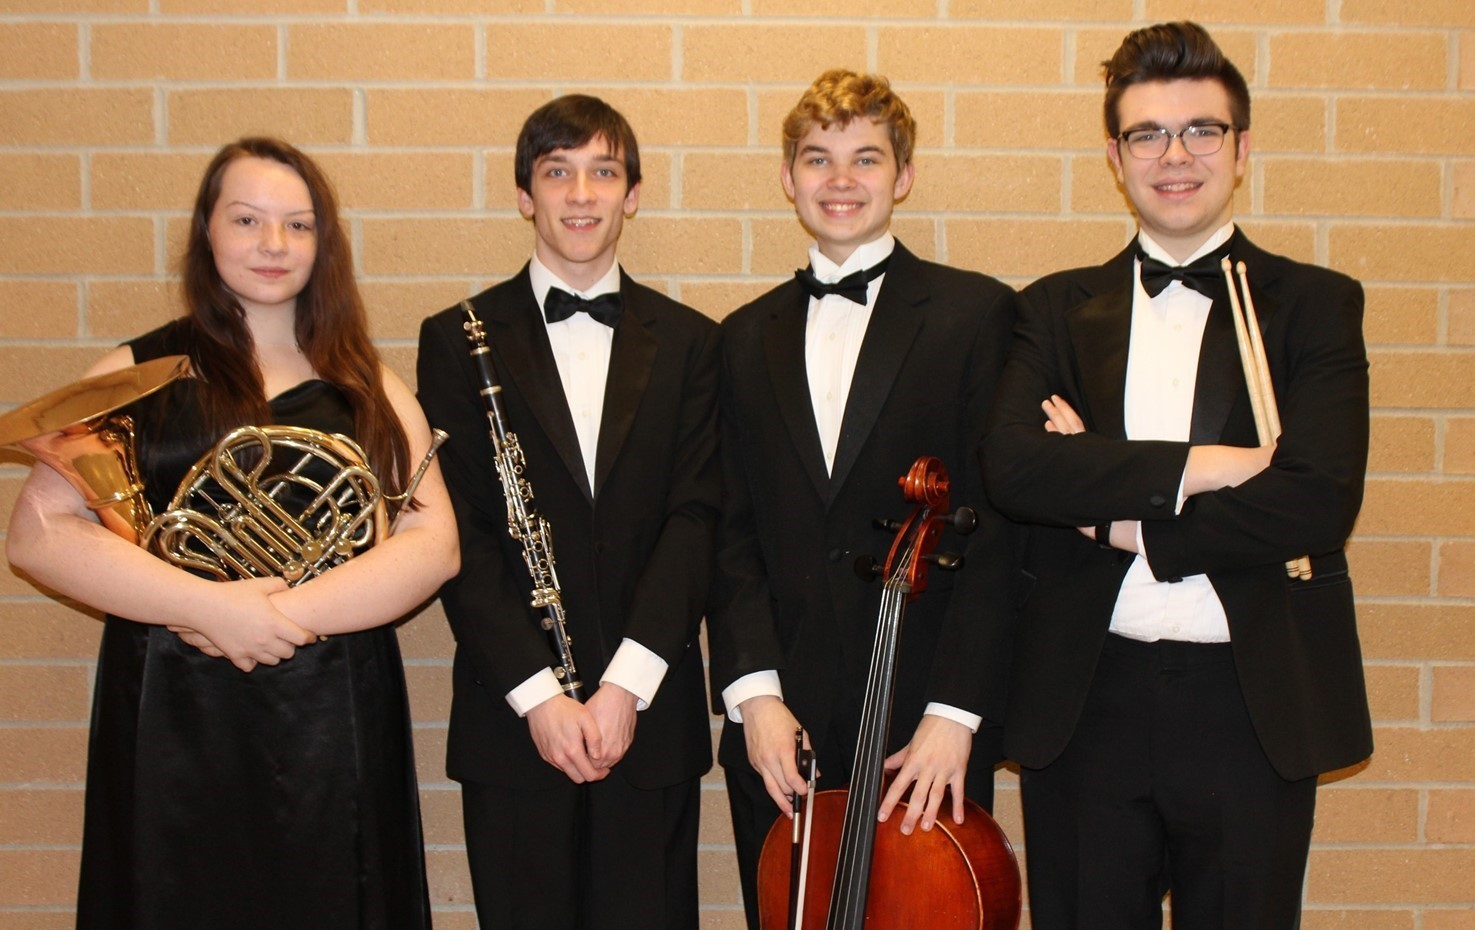 The four BPHS All-State Orchestra Musicians